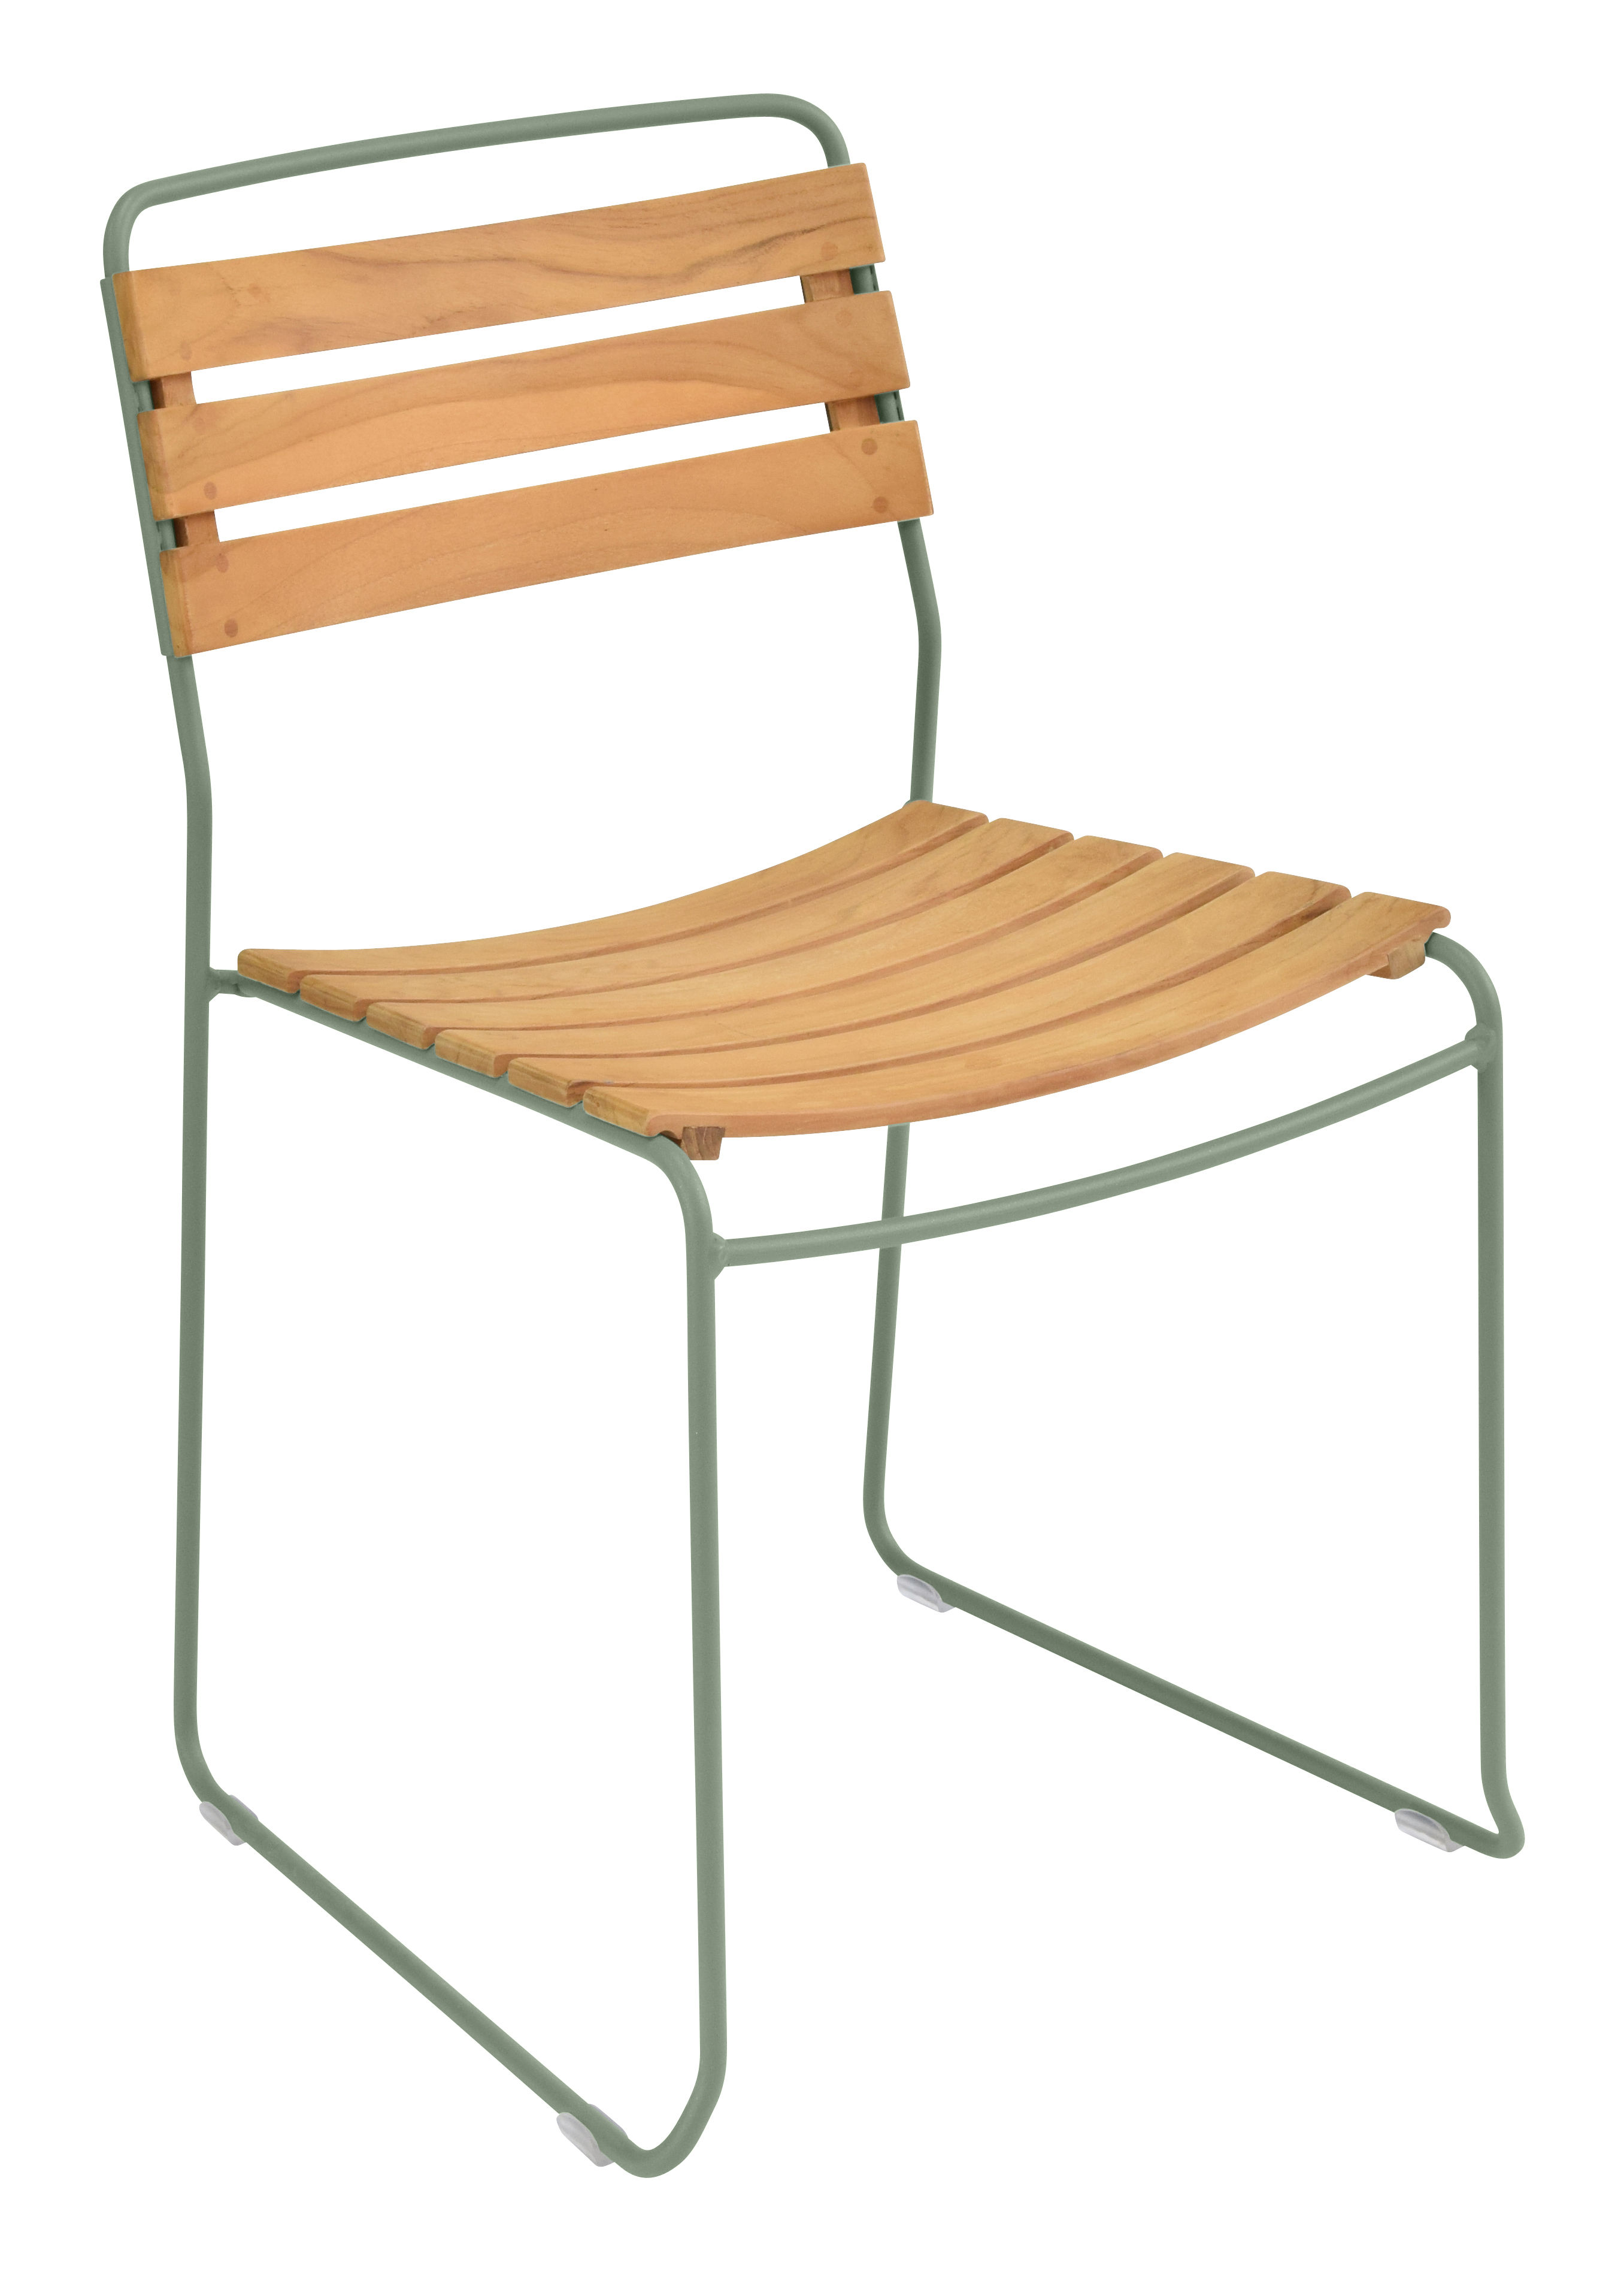 Furniture - Chairs - Surprising Stacking chair - / Wood & metal by Fermob - Cactus / Wood - Oiled teak, Painted steel